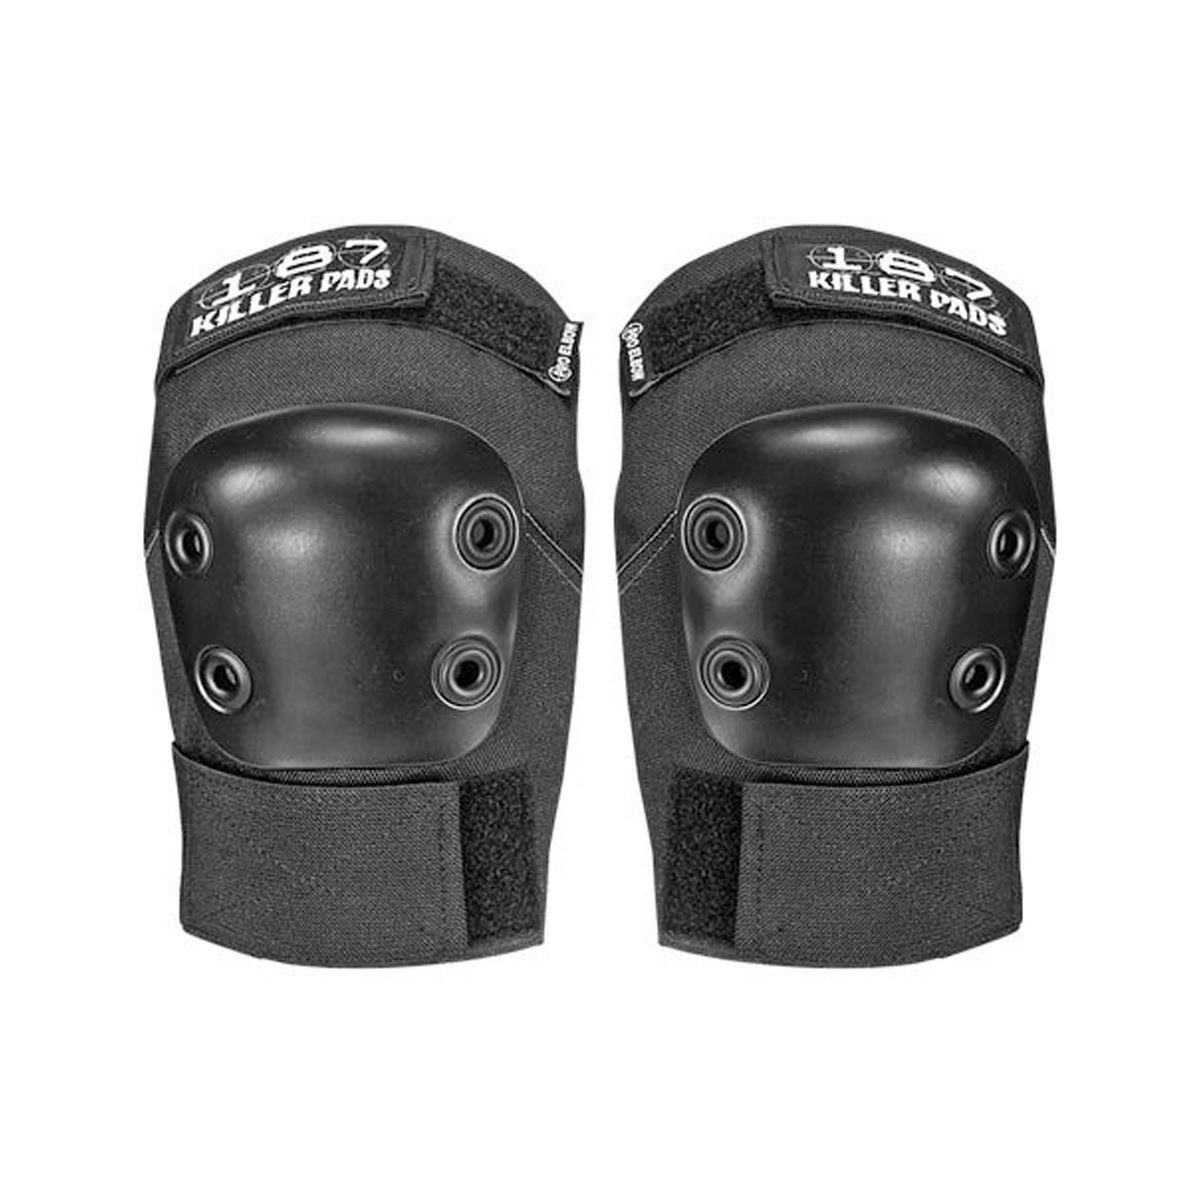 187 Killer Pads Pro Elbow Pads - Black - X-Small